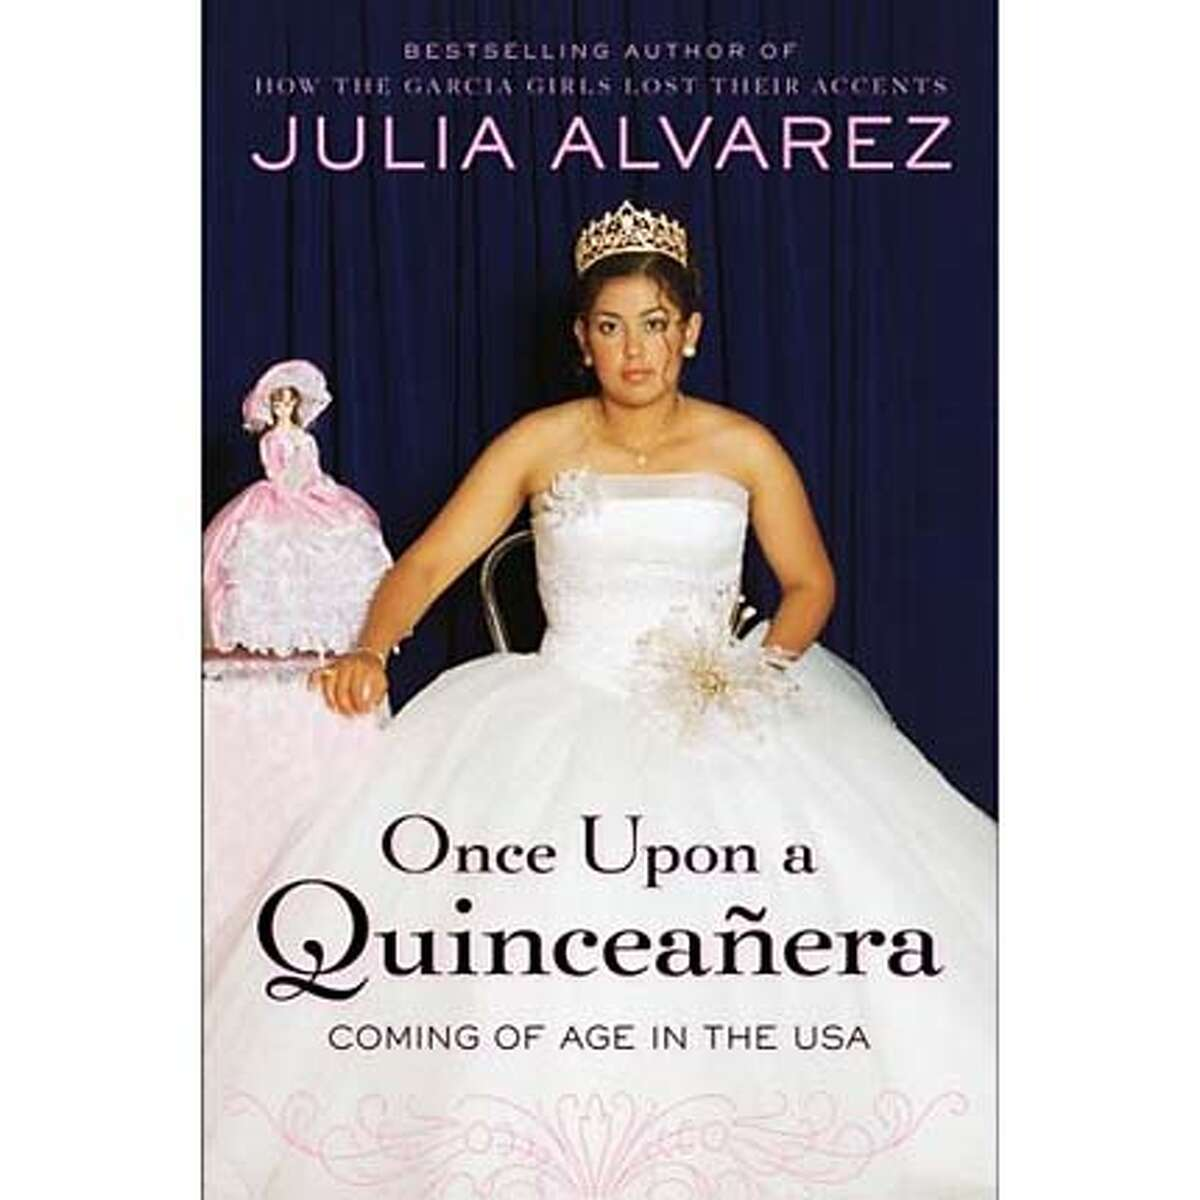 """""""Once Upon a Quinceanera: Coming of Age in the USA"""" by Julia Alvarez"""